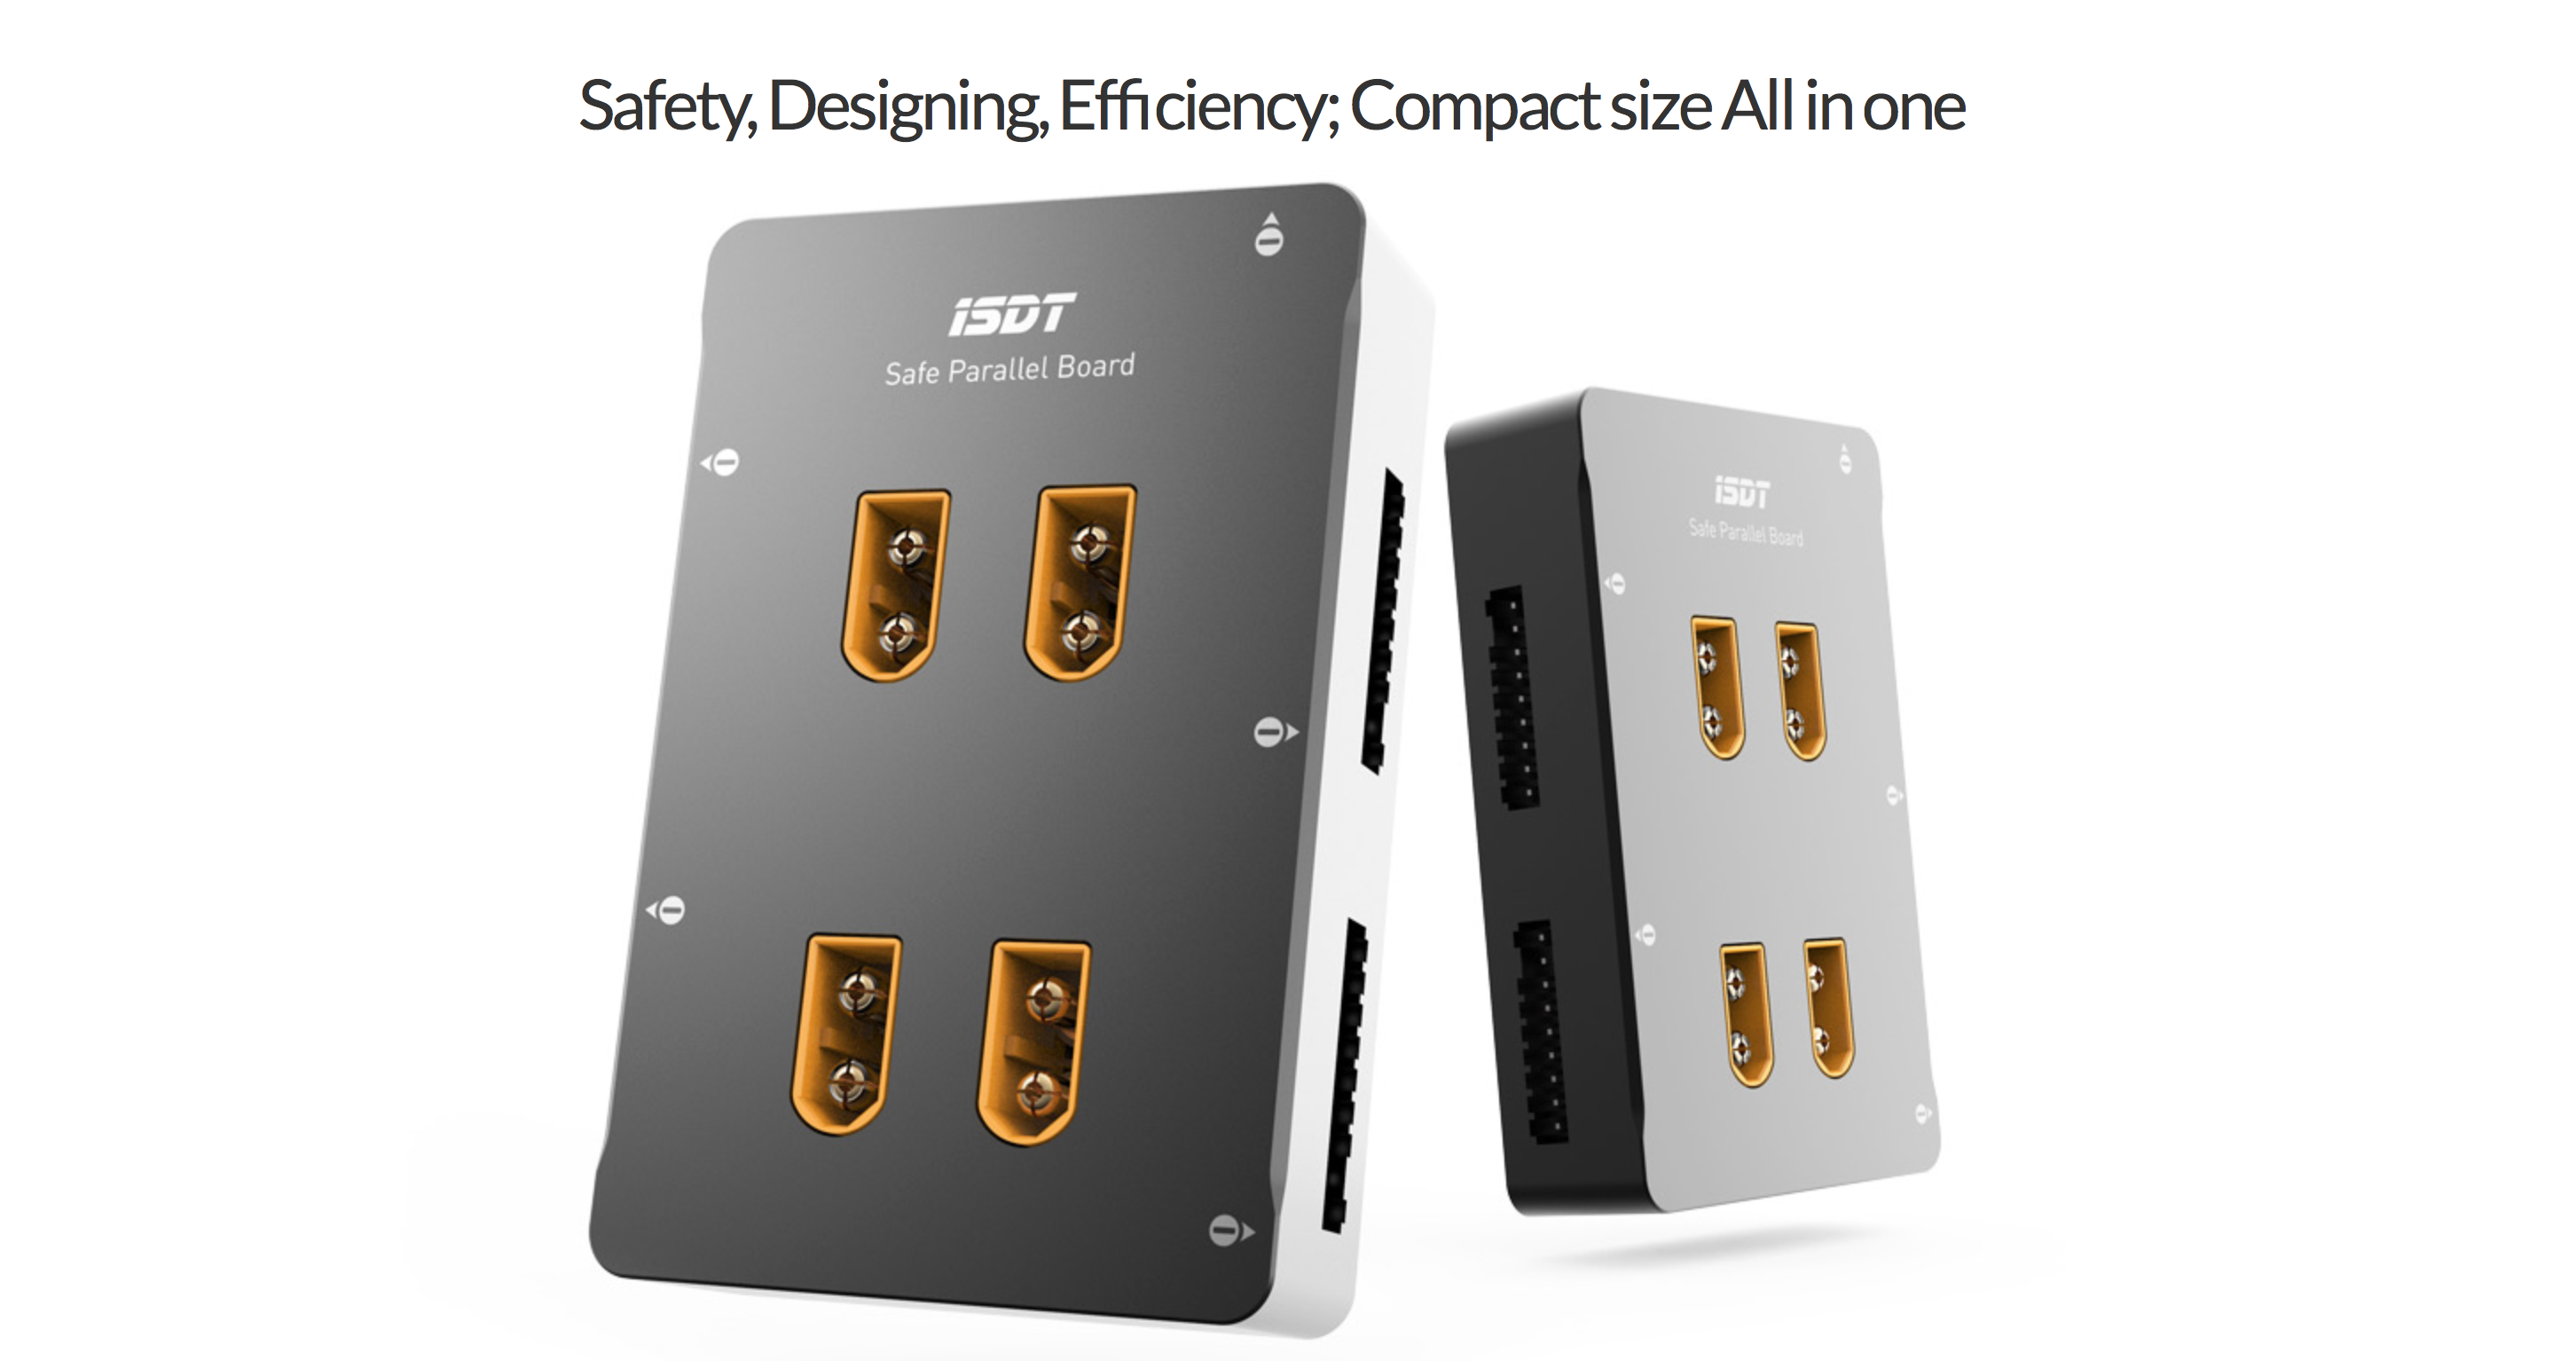 ISDT XT60 1-8S Compact Safe Parallel Charging Board